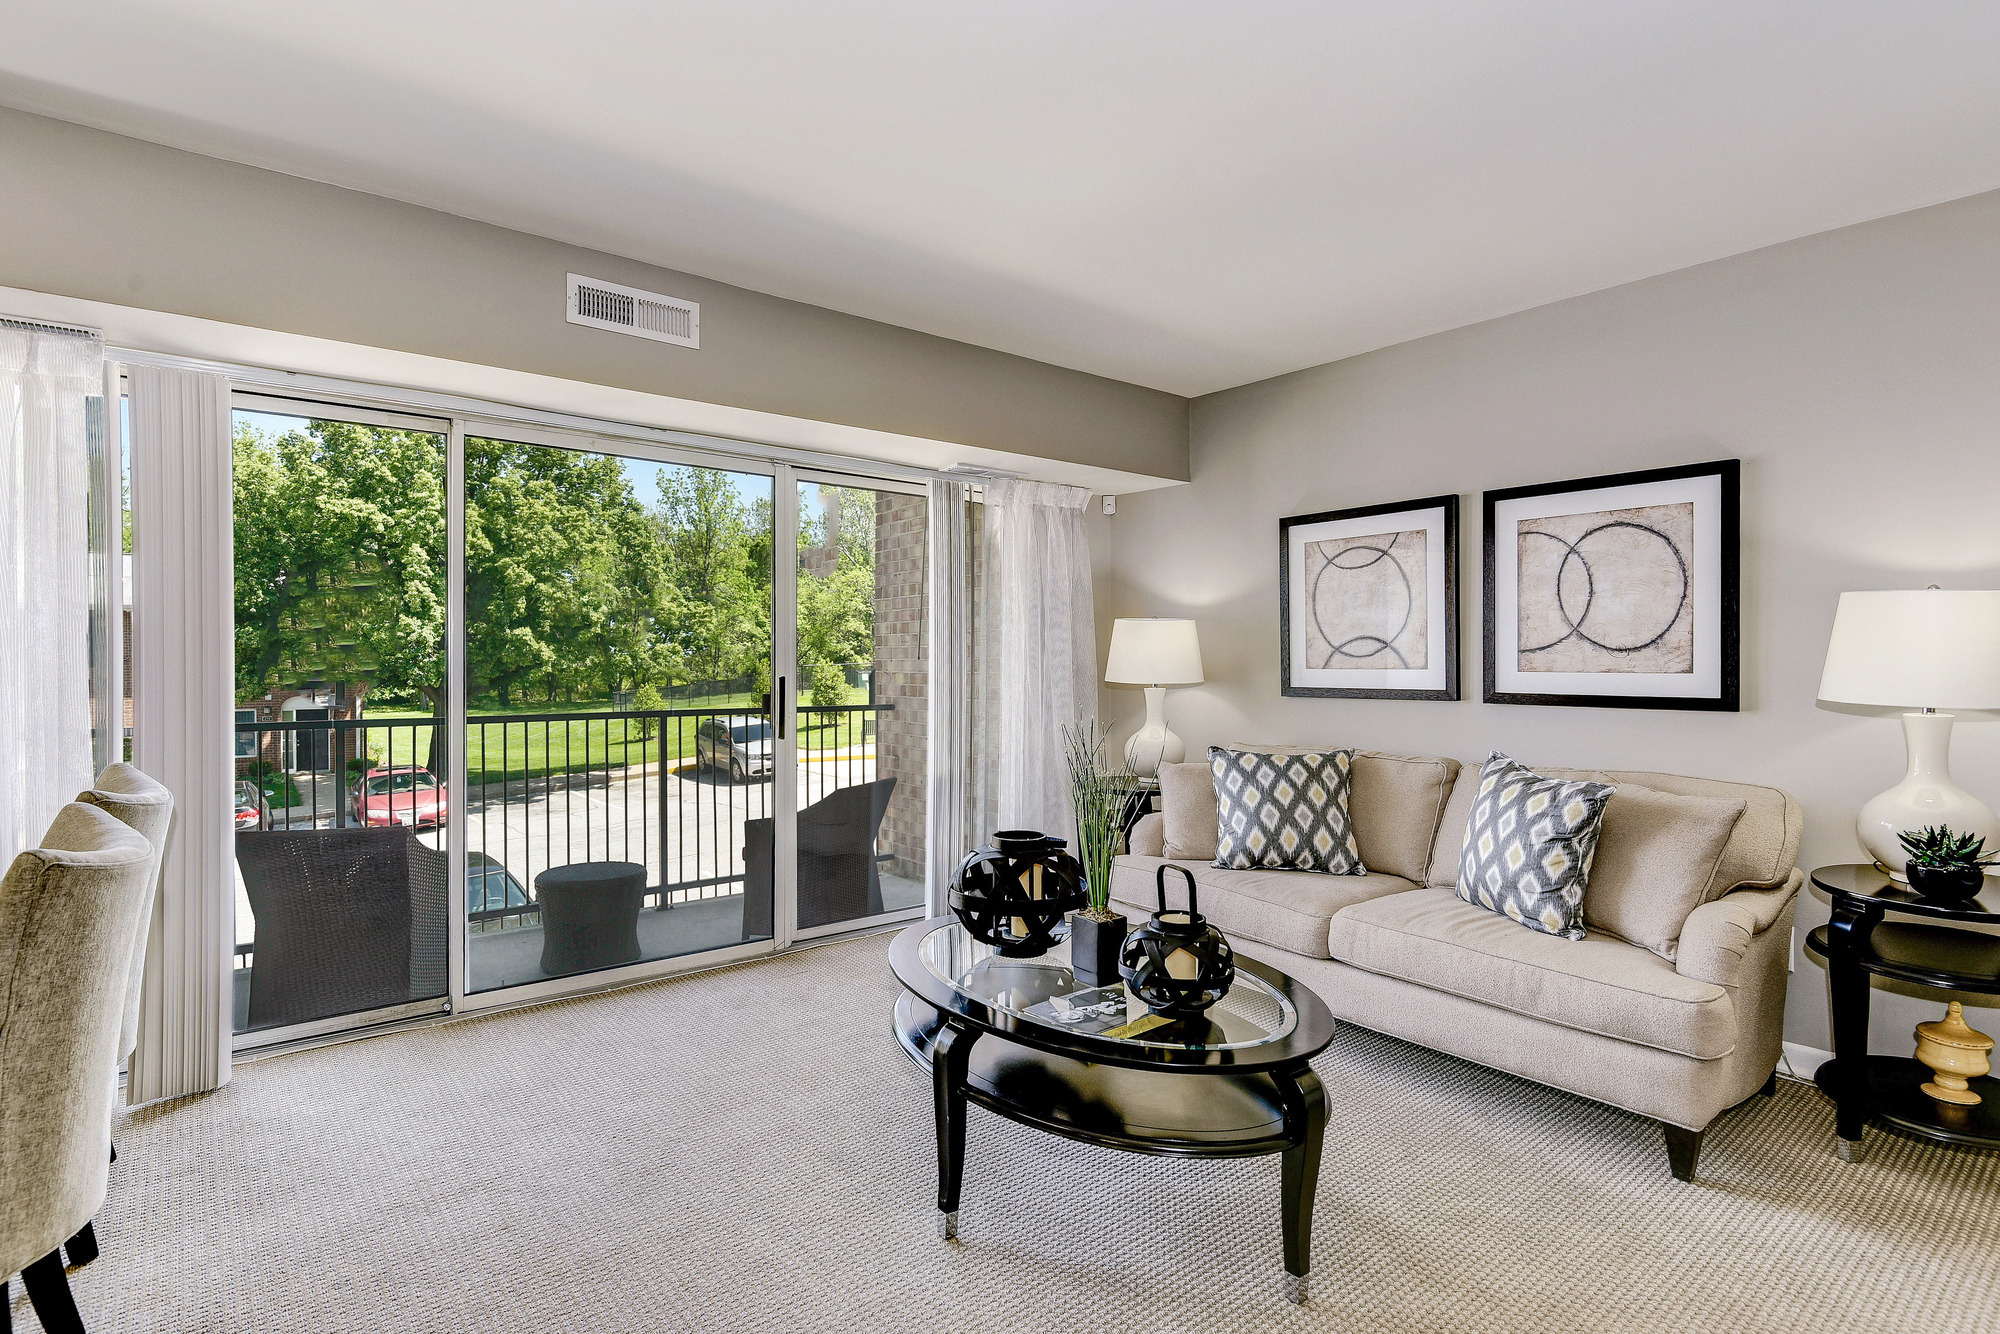 Hampton Manor Apartments & Townhomes in Cockeysville, MD - Living Area